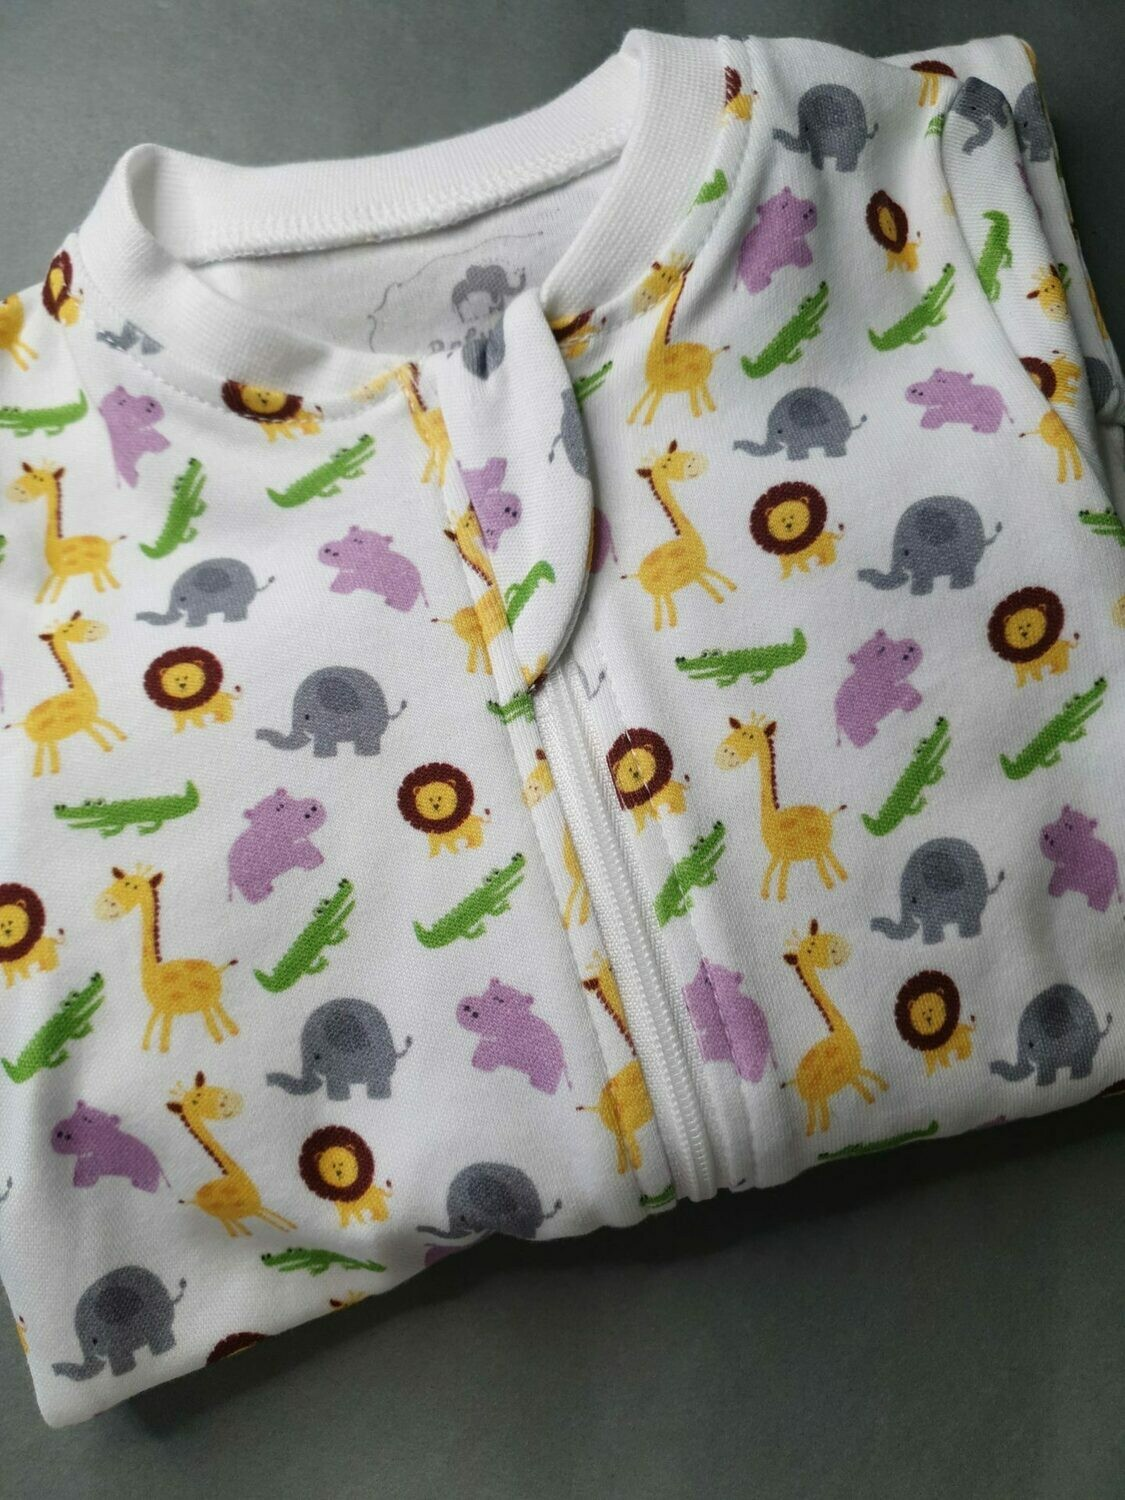 Babyboo IN THE JUNGLE ORGANIC COTTON ZIPPYBOO SUIT